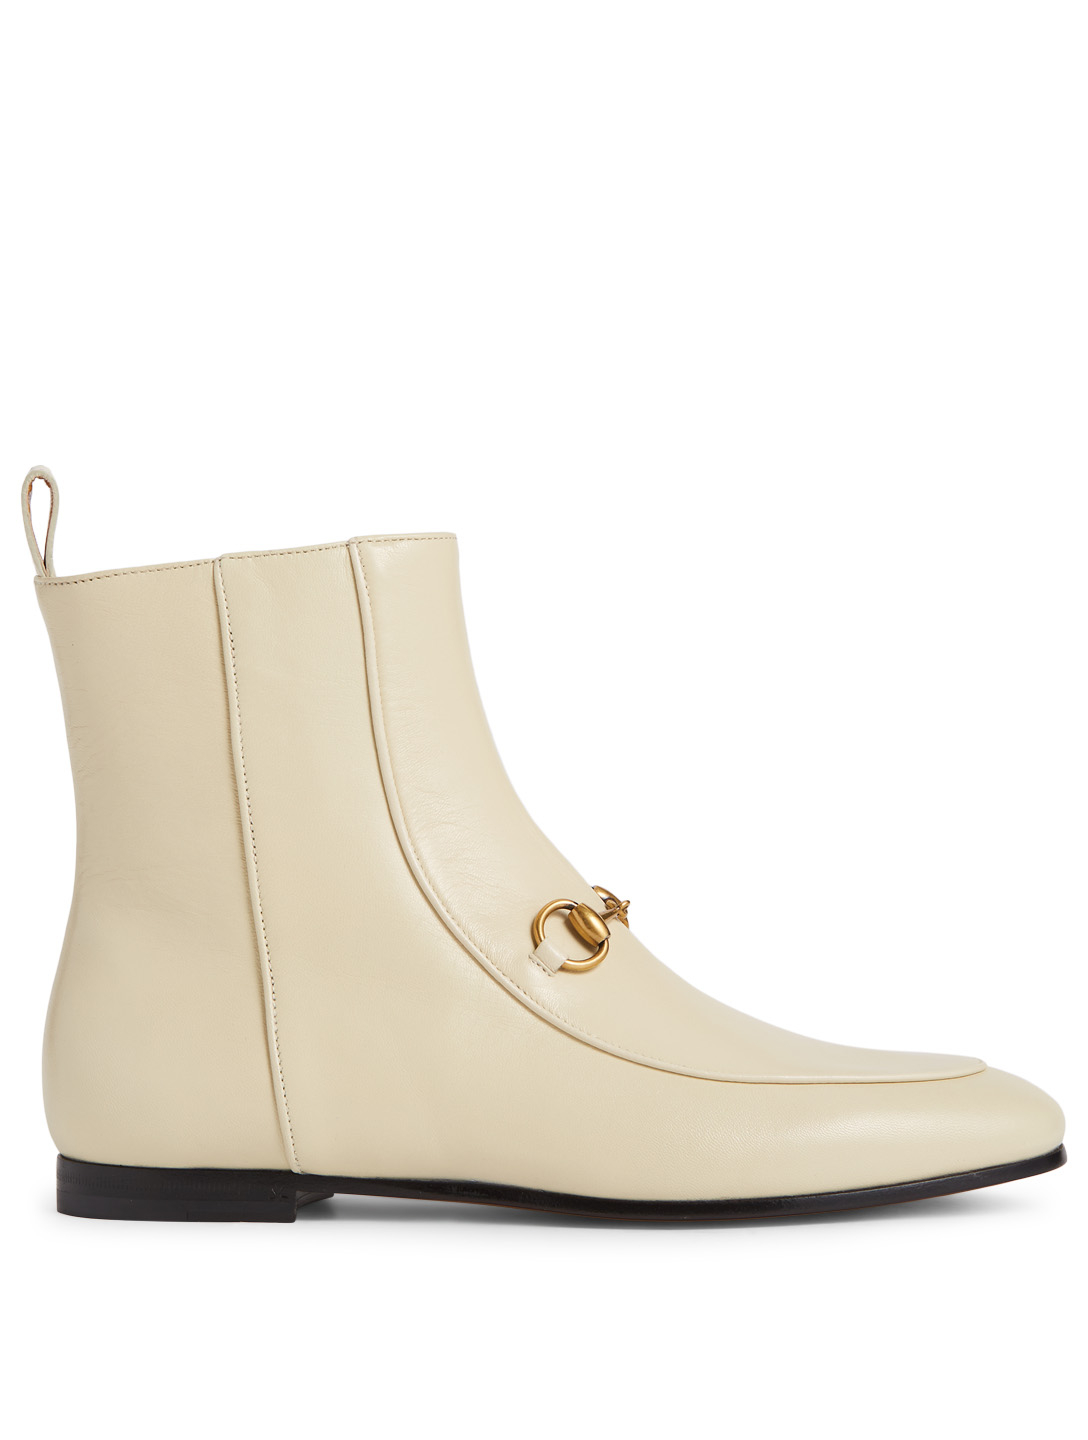 43cc09312a3 GUCCI Jordaan Leather Ankle Boots